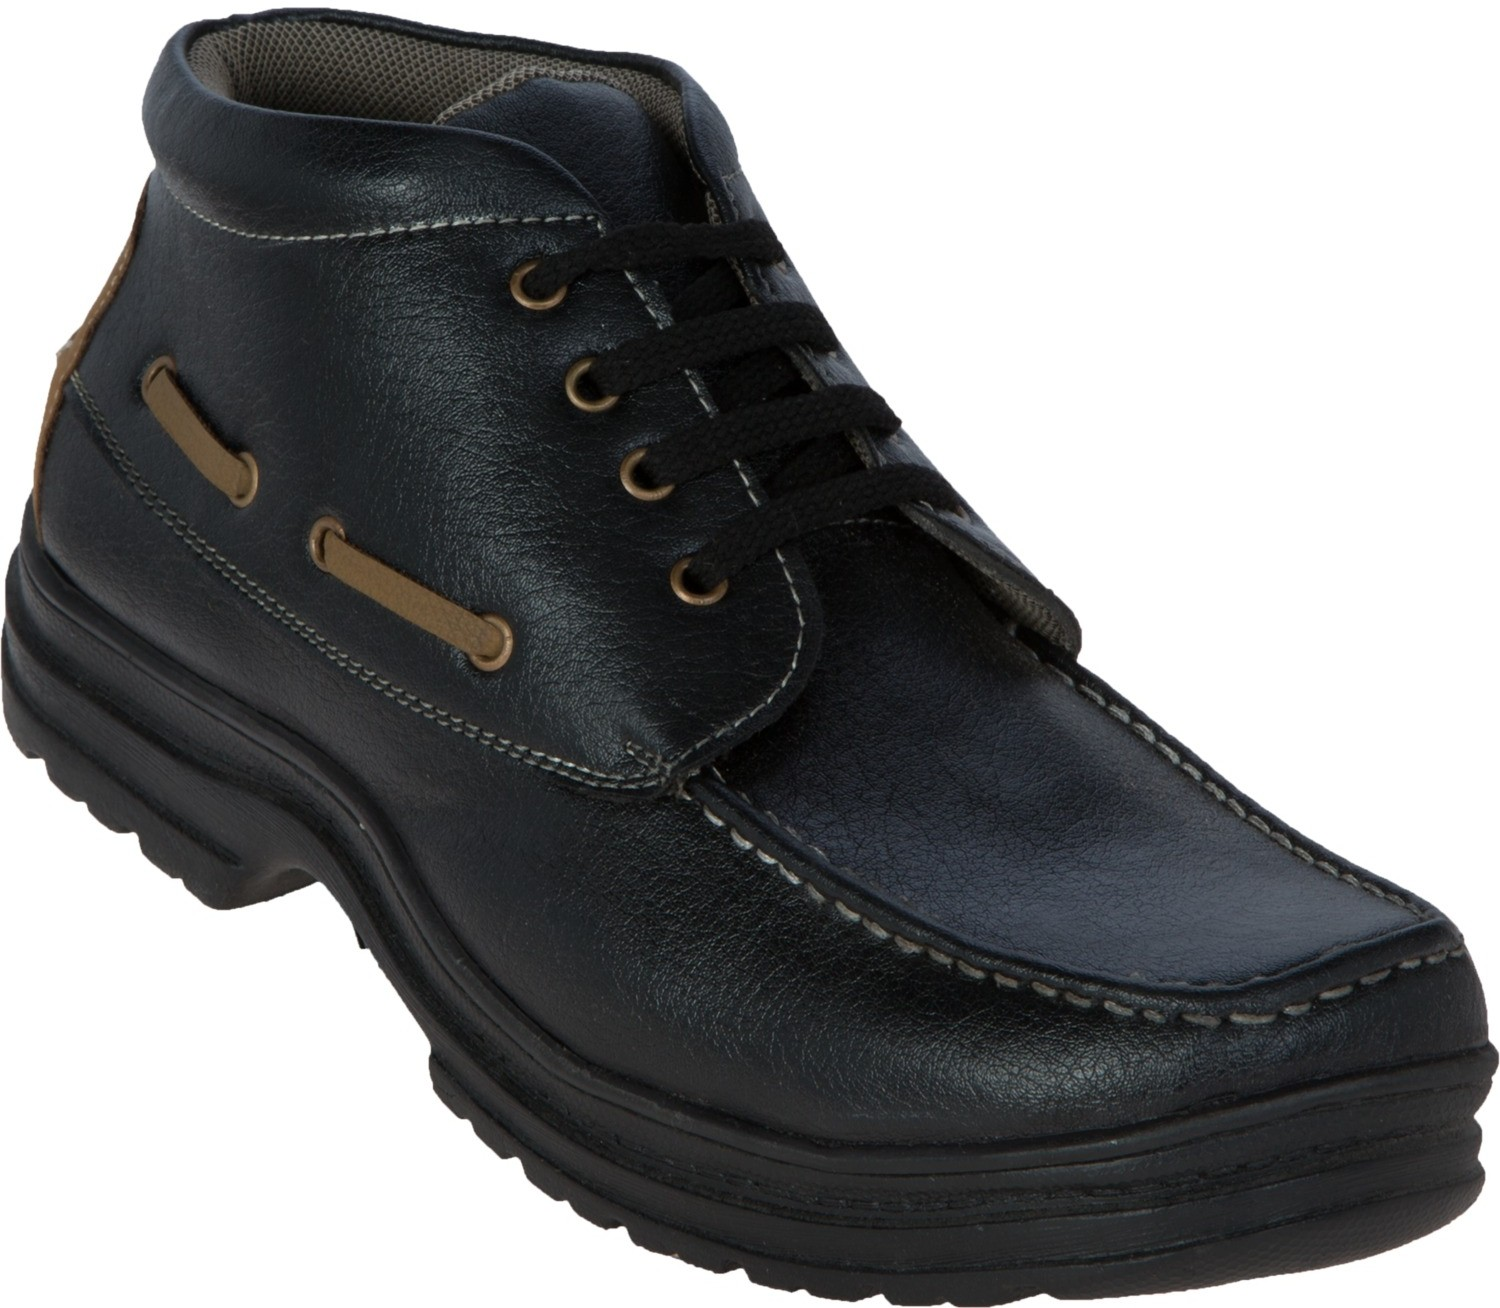 Zovi Black High Ankle Rugged Outdoors(Black)